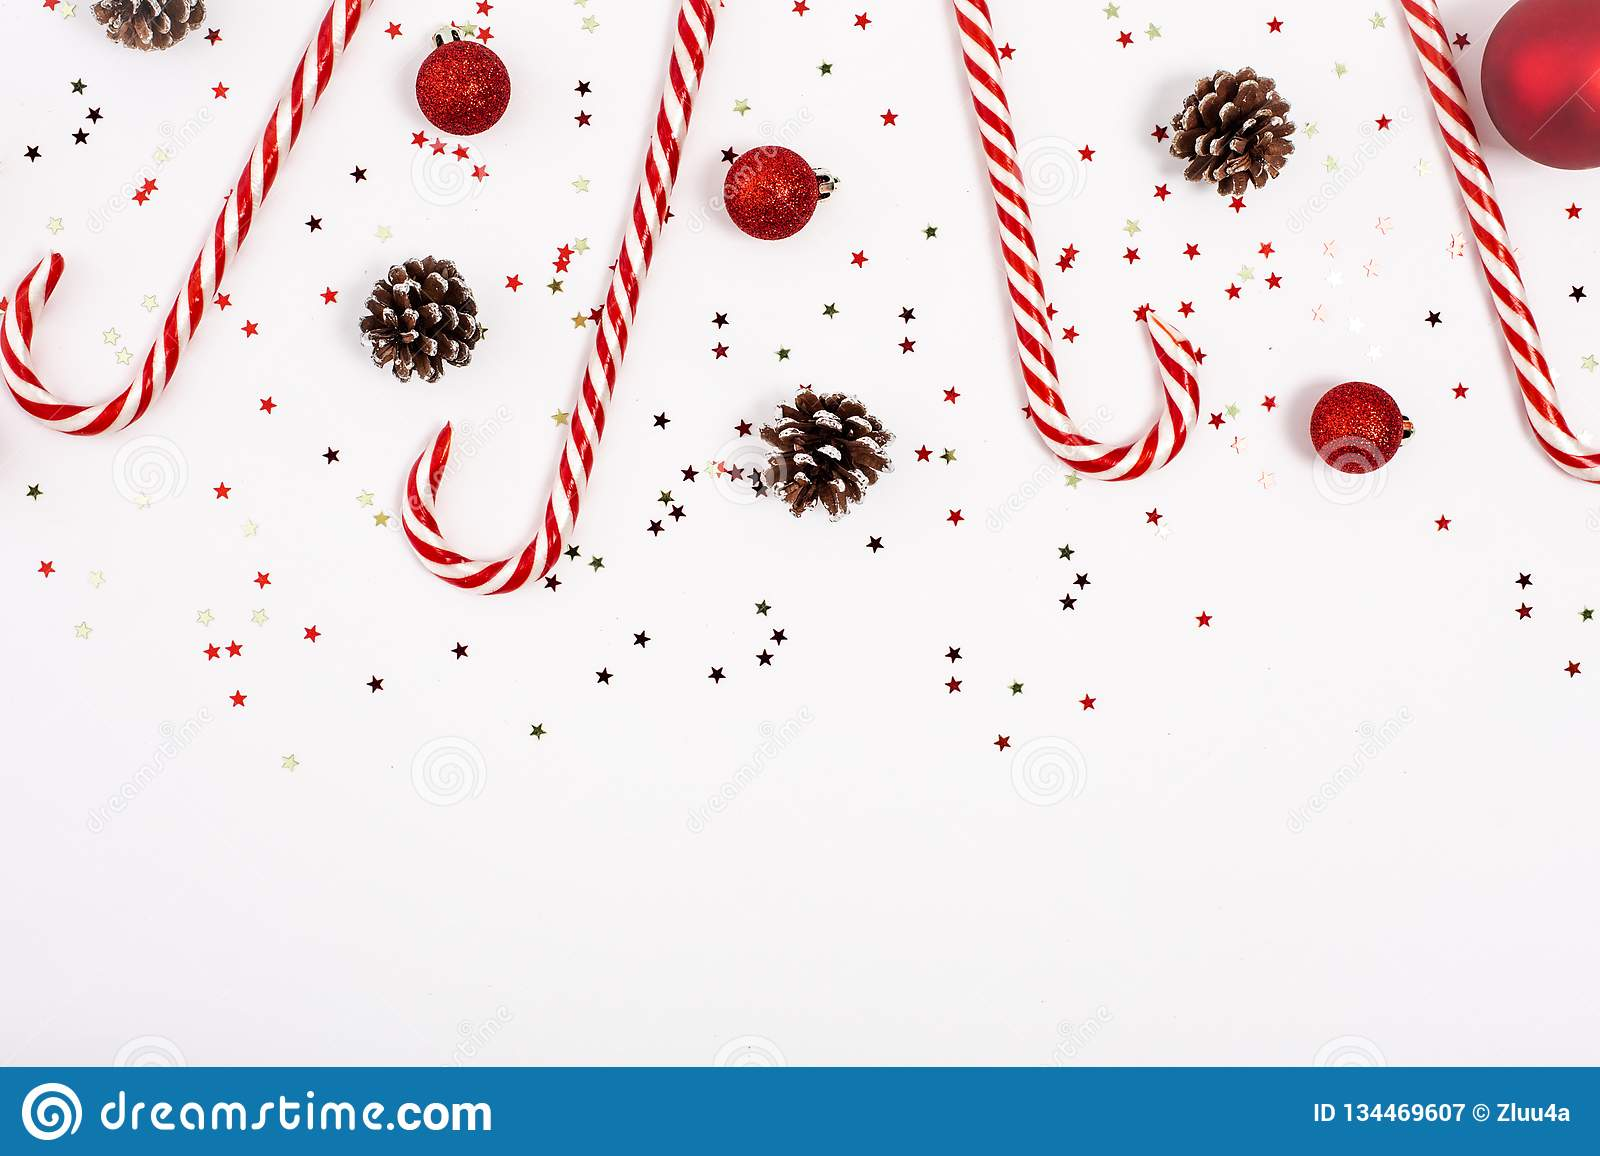 Christmas border made with candy cane, red balls and cones on white background. View from the top